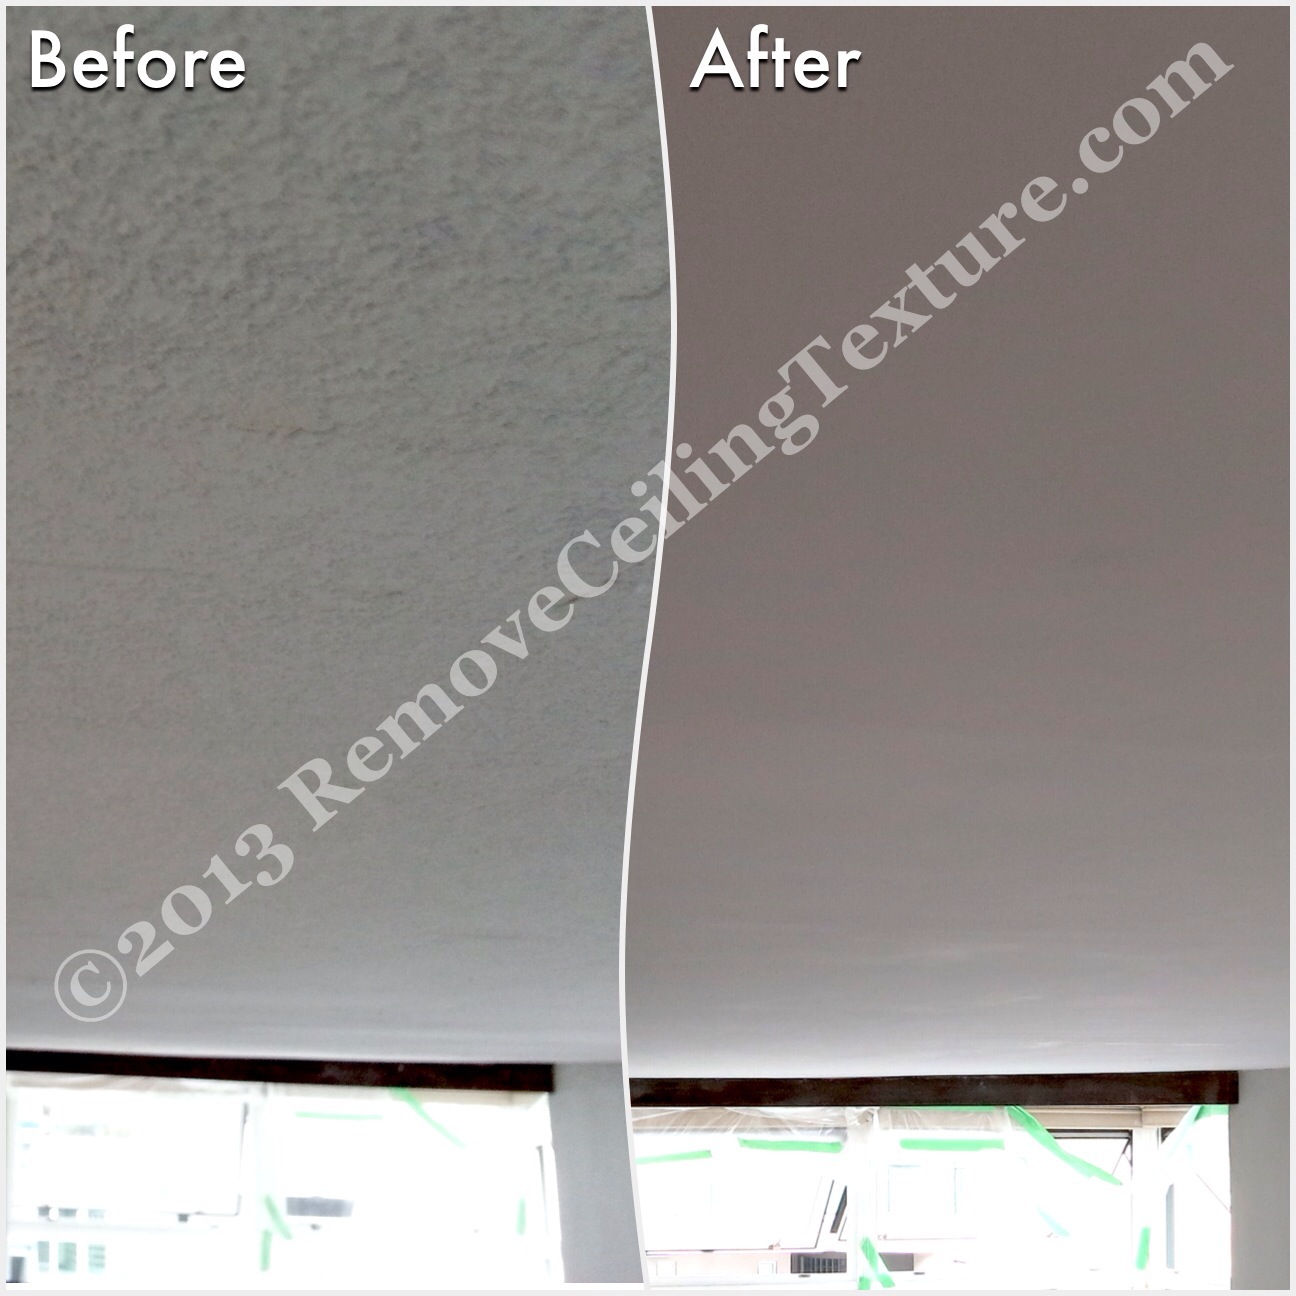 The before photo is after the homeowner tried scraping texture from ceilings. In the end he ended up calling RemoveCeilingTexture.com to fix the mess.